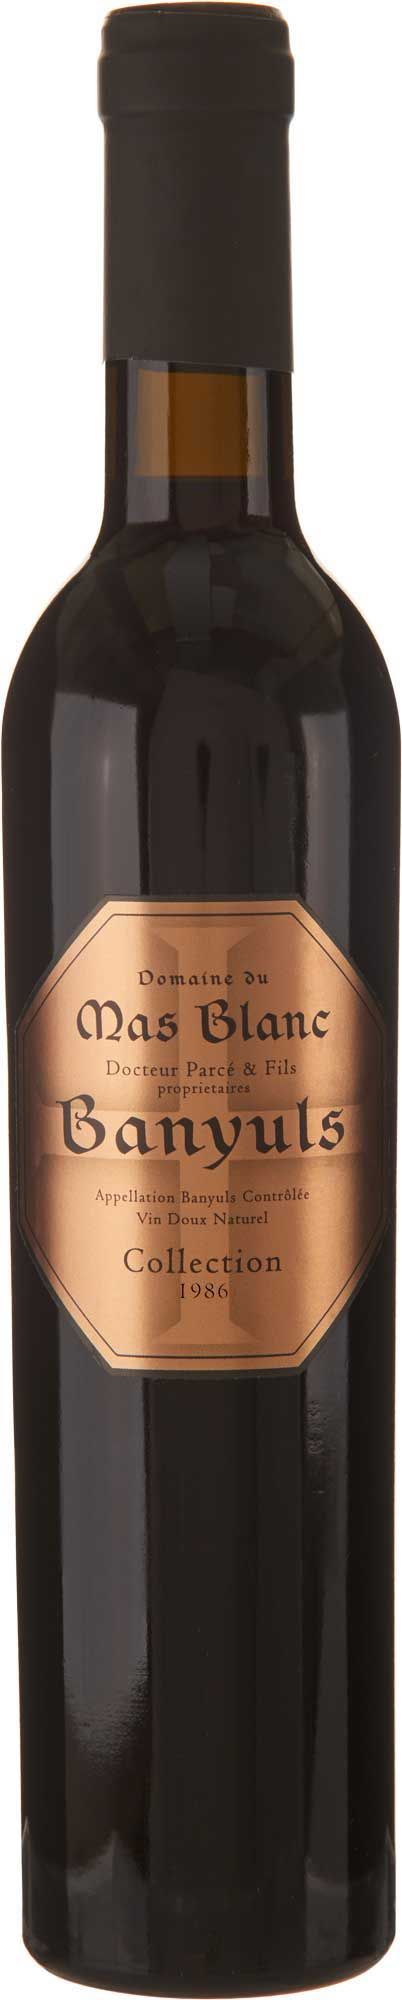 Domaine du Mas Blanc Banyuls Collection 1986